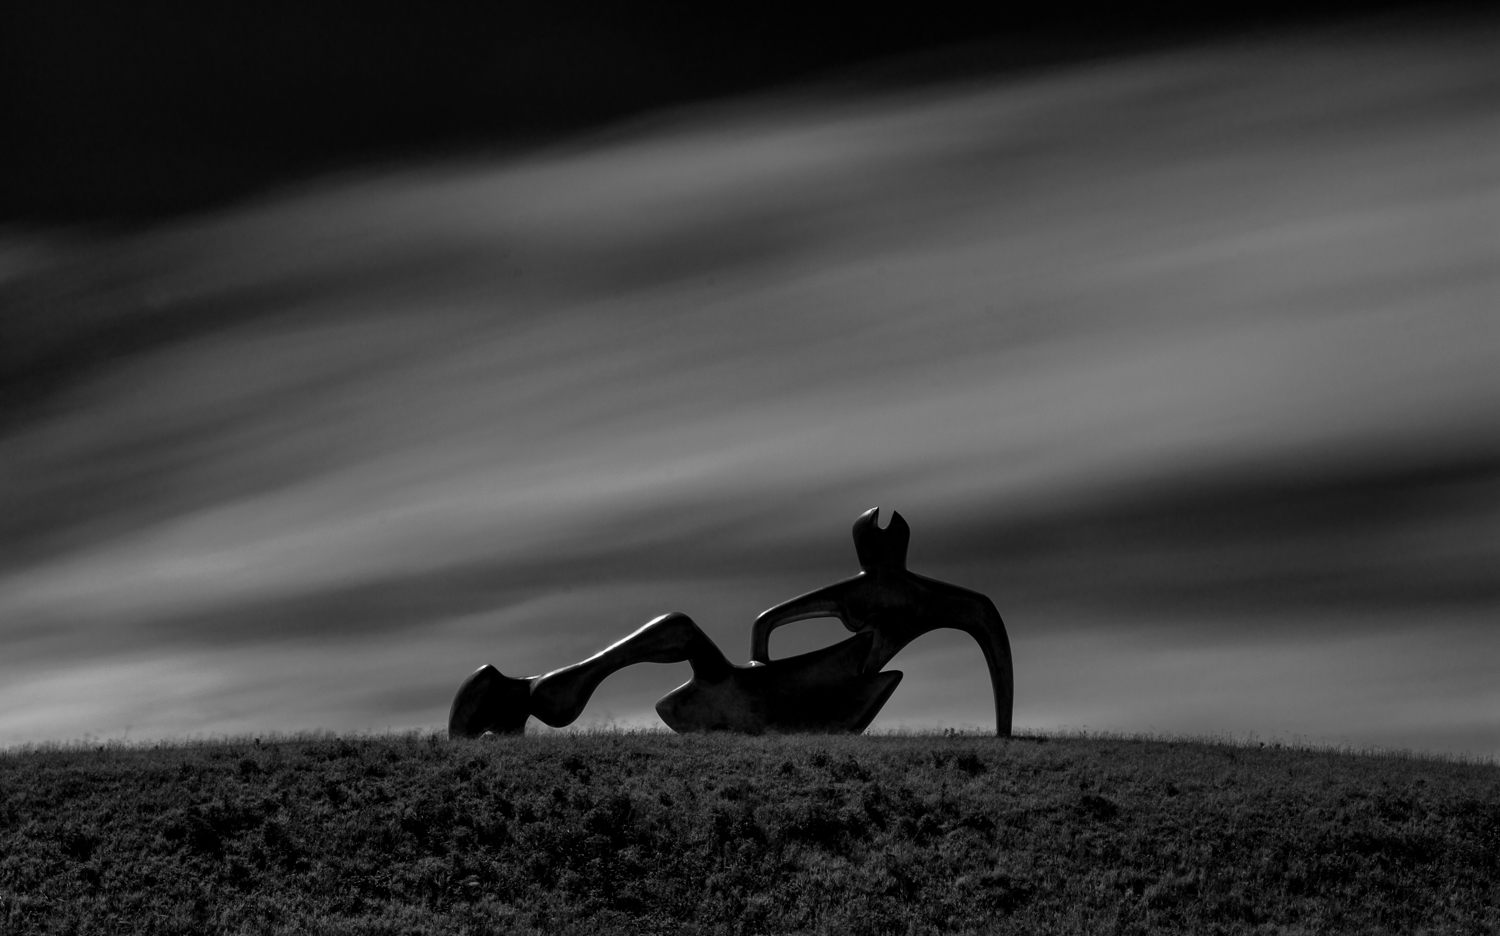 Large Reclining Figure - long exposure